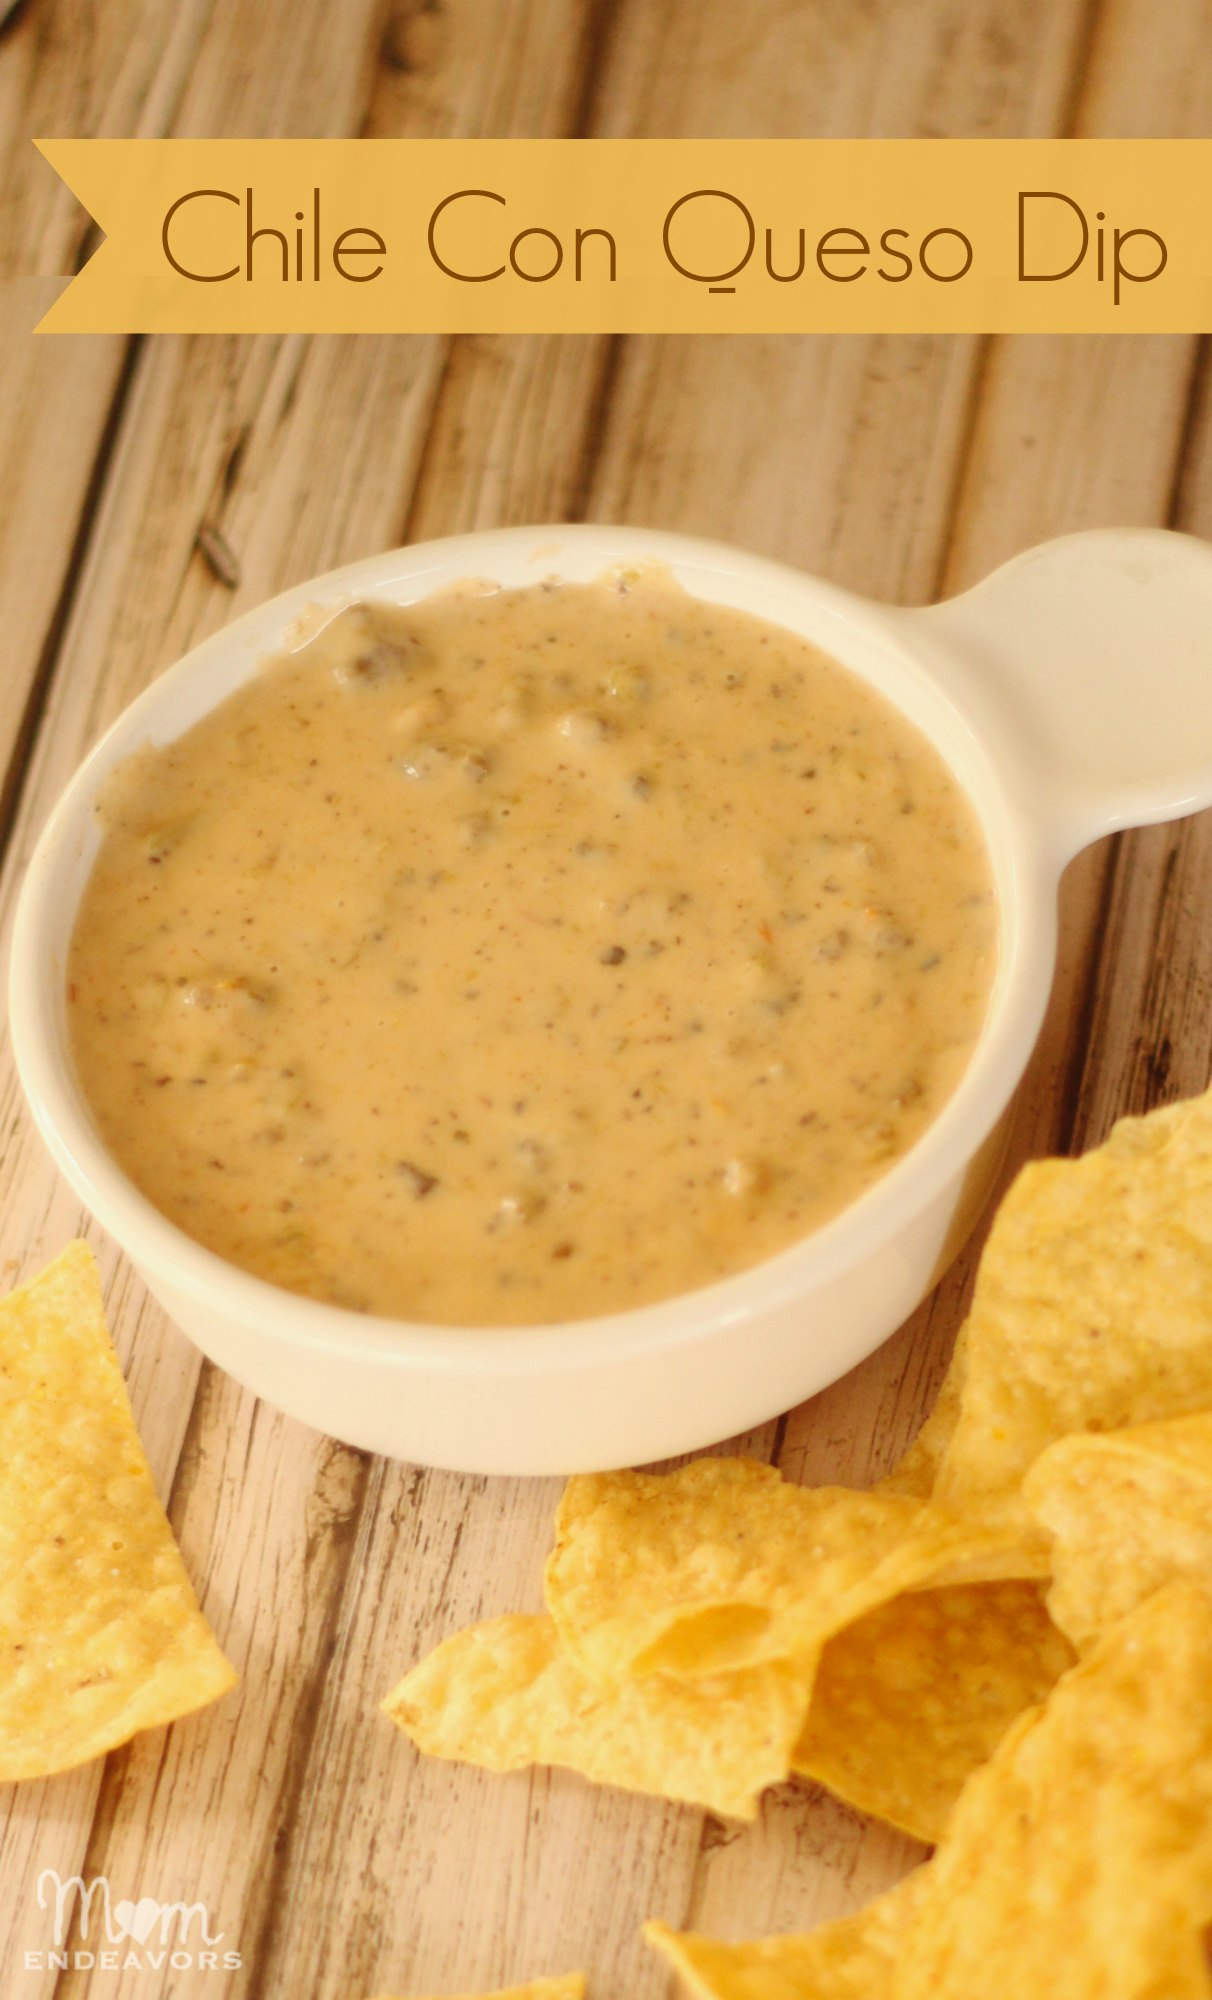 queso anejo breakfast queso fundido authentic tex mex chile con queso ...